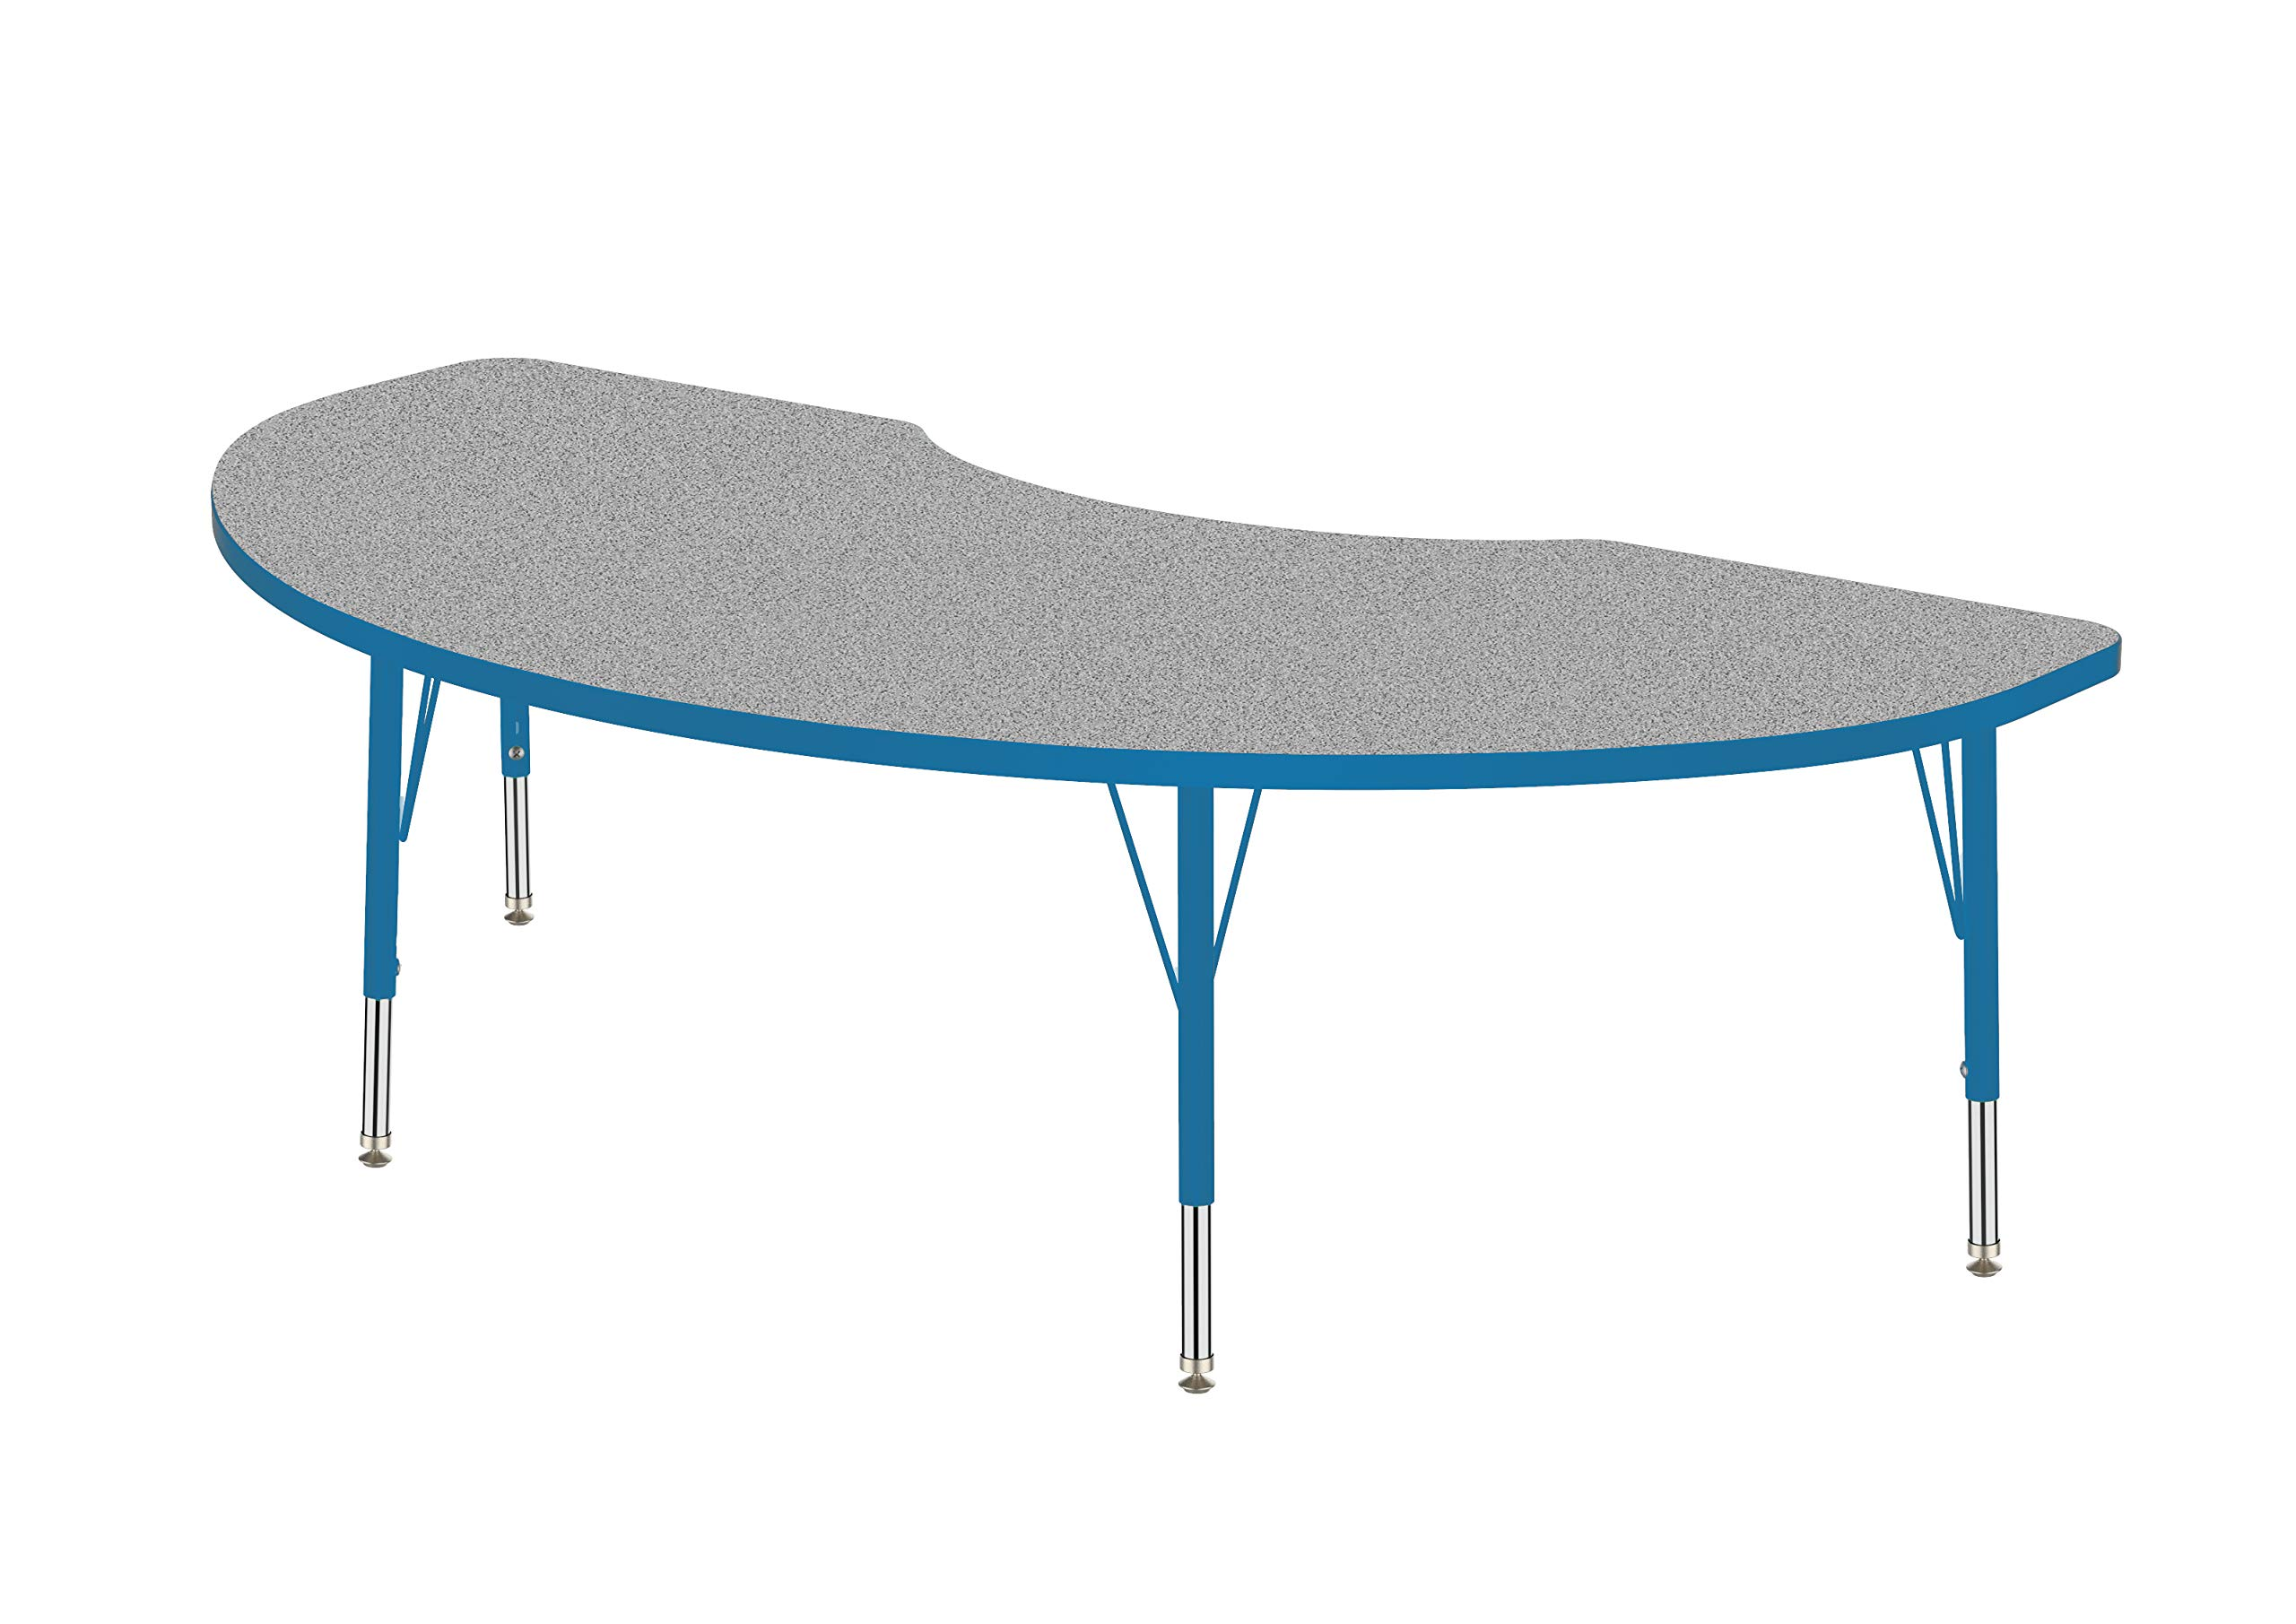 Marco Group AMG2267-F4-ABLU 36'' x 72'' Kidney Shaped Adjustable Height Activity Table (16''-24'') Toddler Size Legs Gray Nebula-Top, Blue-Edge